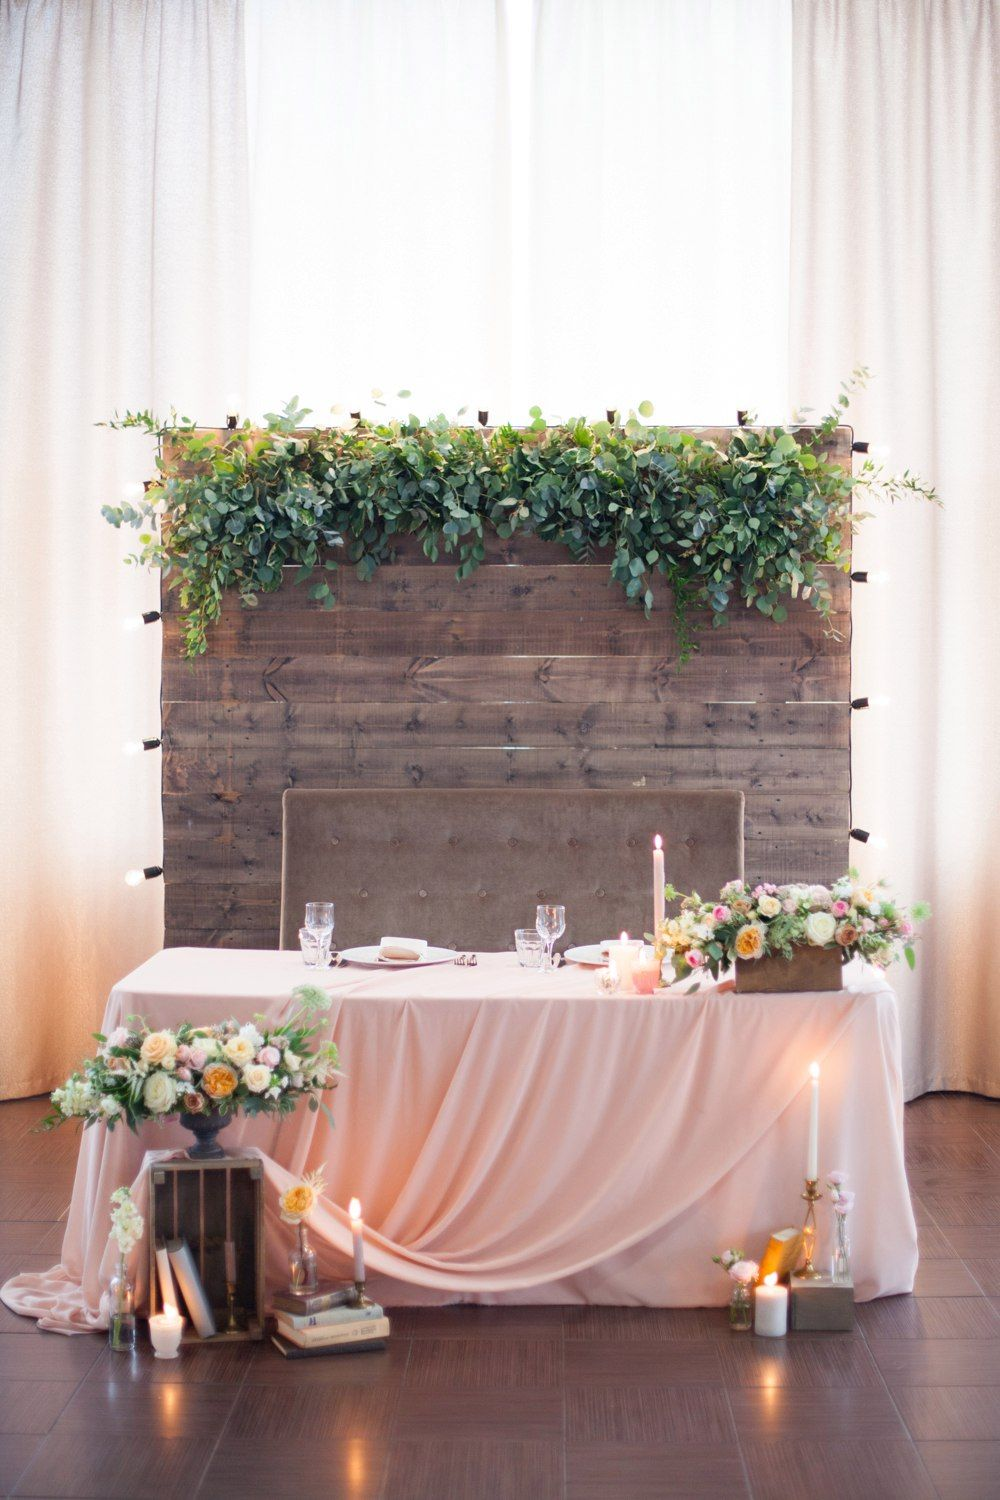 Wedding reception stage decoration images  Hermoso  Bodas y Novias  Pinterest  Backdrops Wedding and